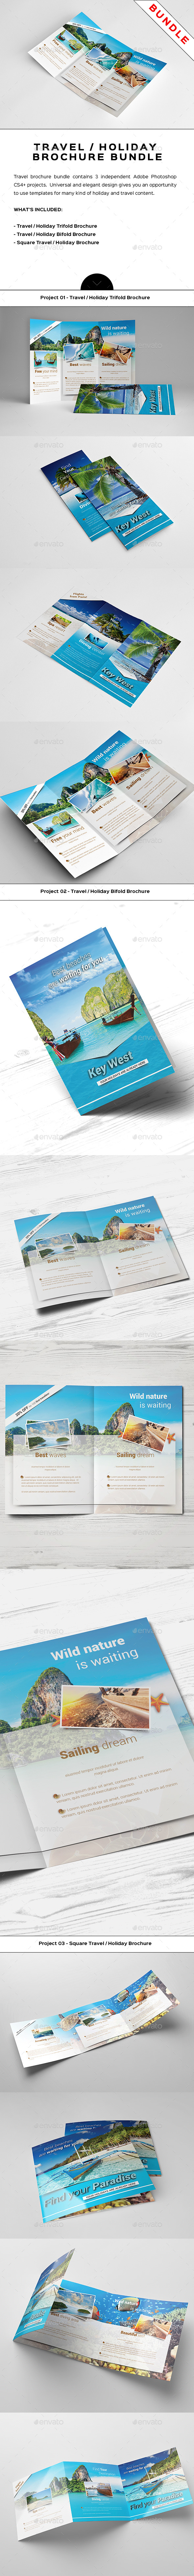 Travel / Holiday Brochure Bundle - Informational Brochures